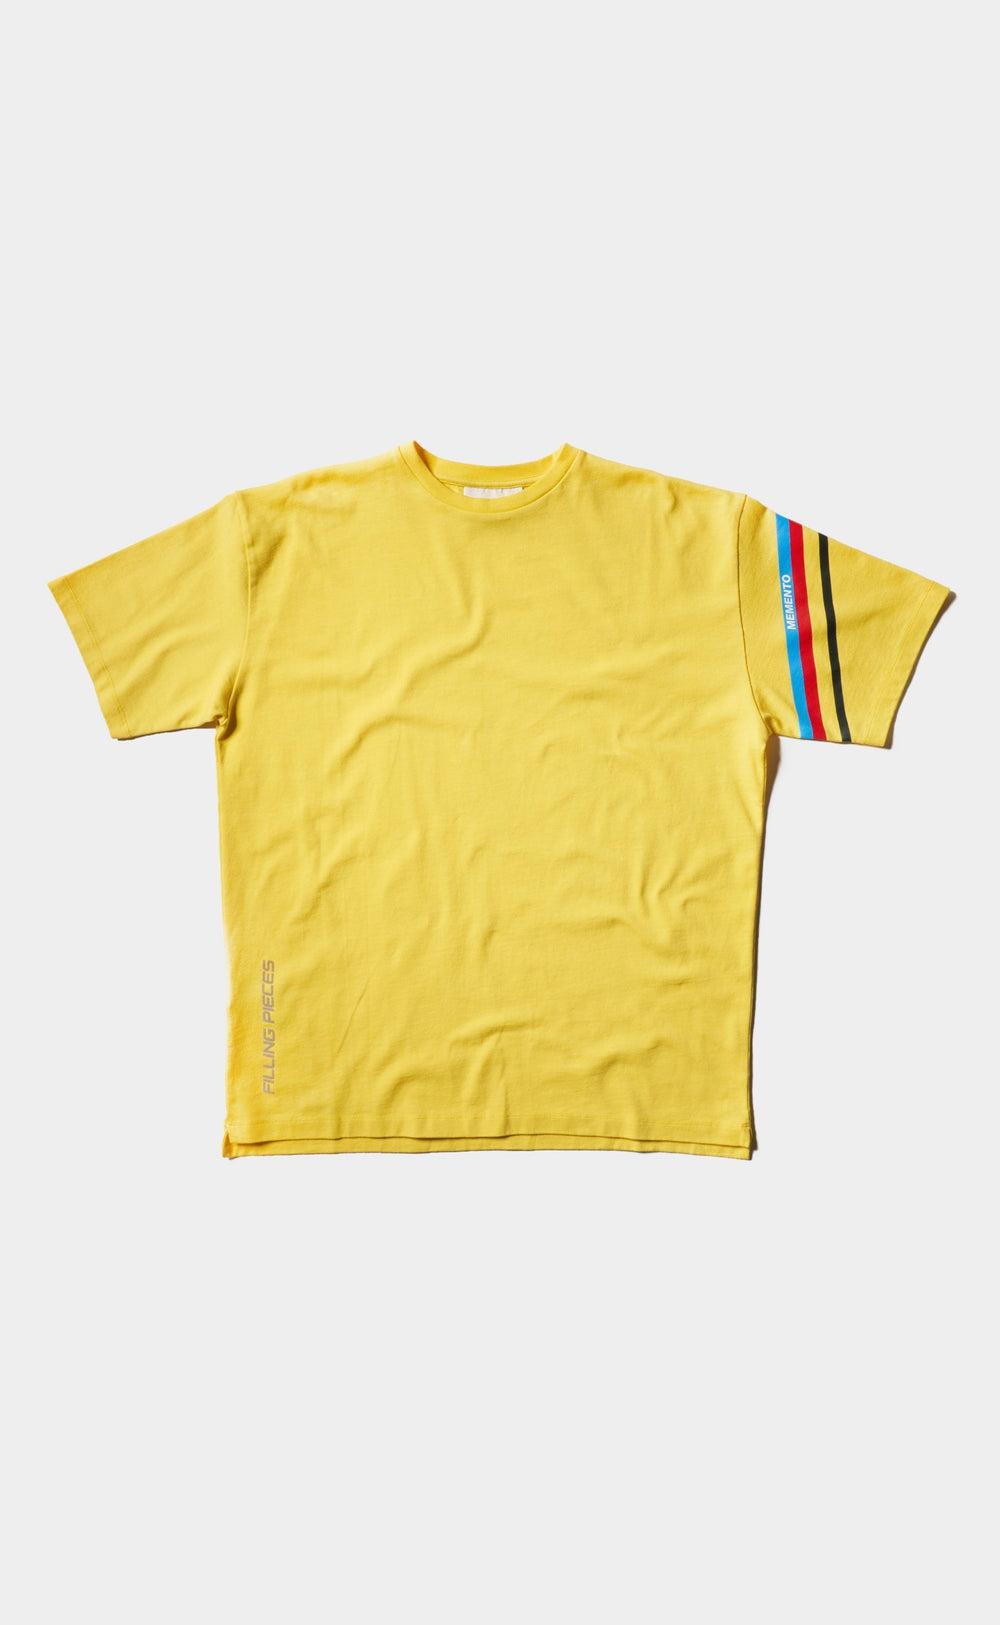 Graphic Tee Yellow - Striped